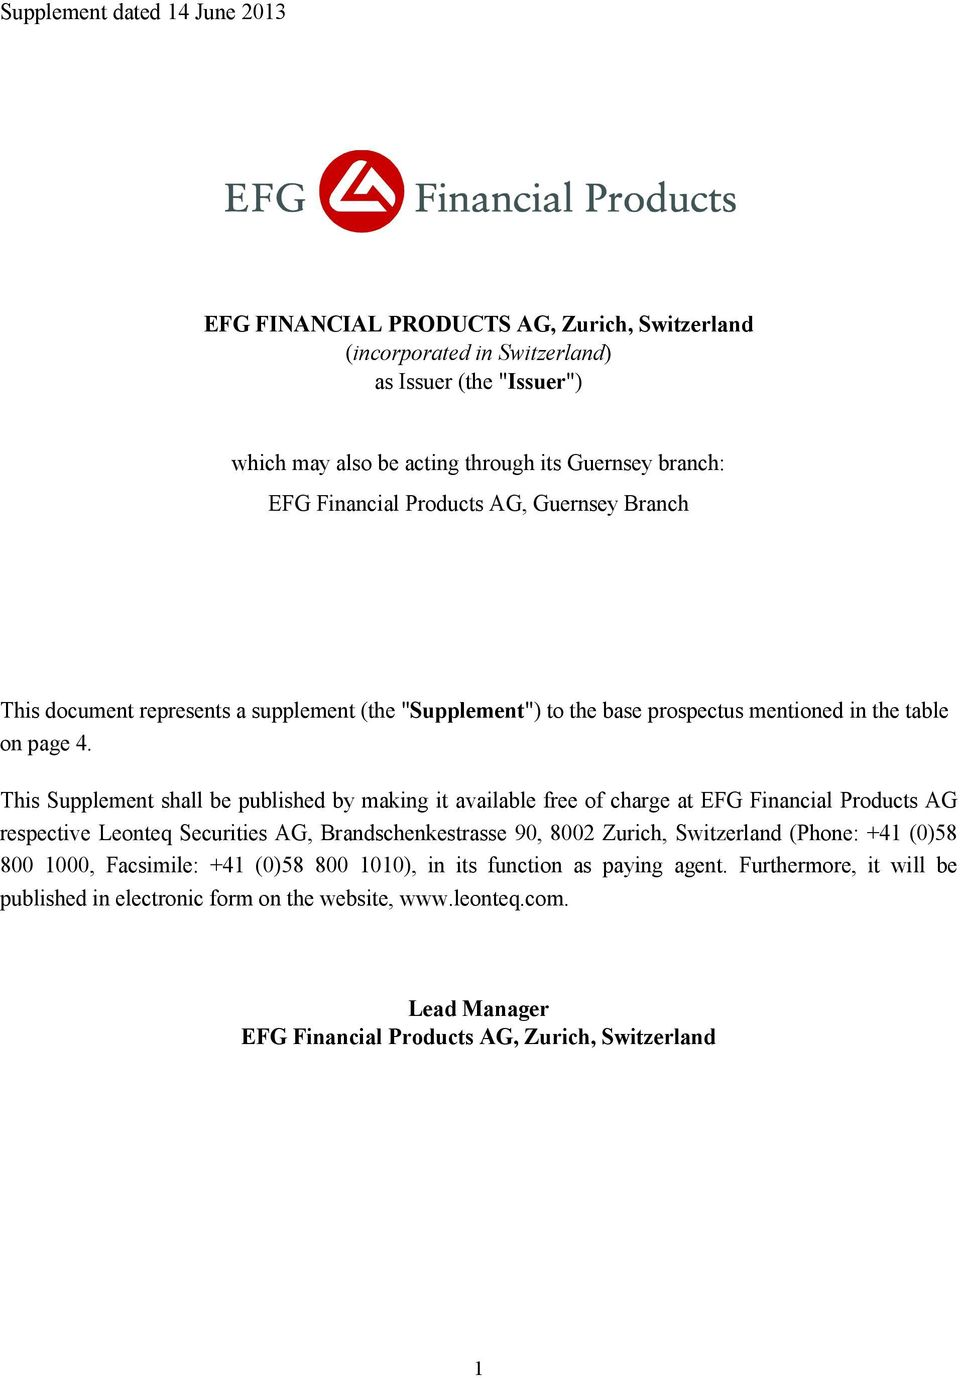 This Supplement shall be published by making it available free of charge at EFG Financial Products AG respective Leonteq Securities AG, Brandschenkestrasse 90, 8002 Zurich, Switzerland